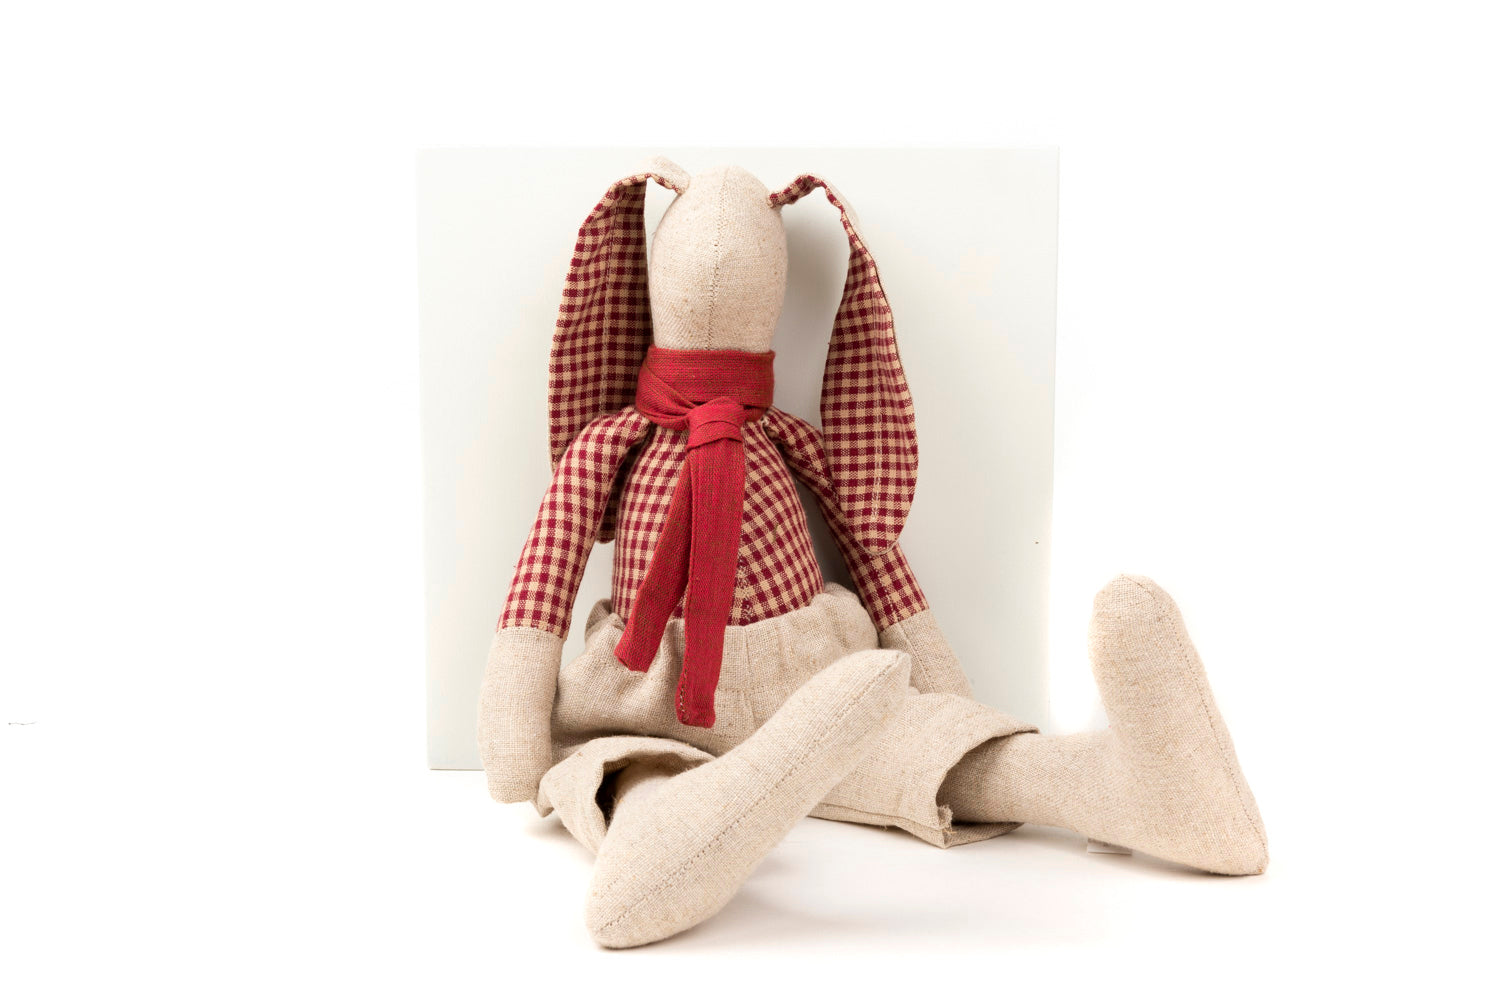 Stuffed bunny Rabbit doll Rag doll Fabric Doll Plushie softie Handmade linen doll Nursery decor Gift for baby boy Cloth doll Stuffed animal